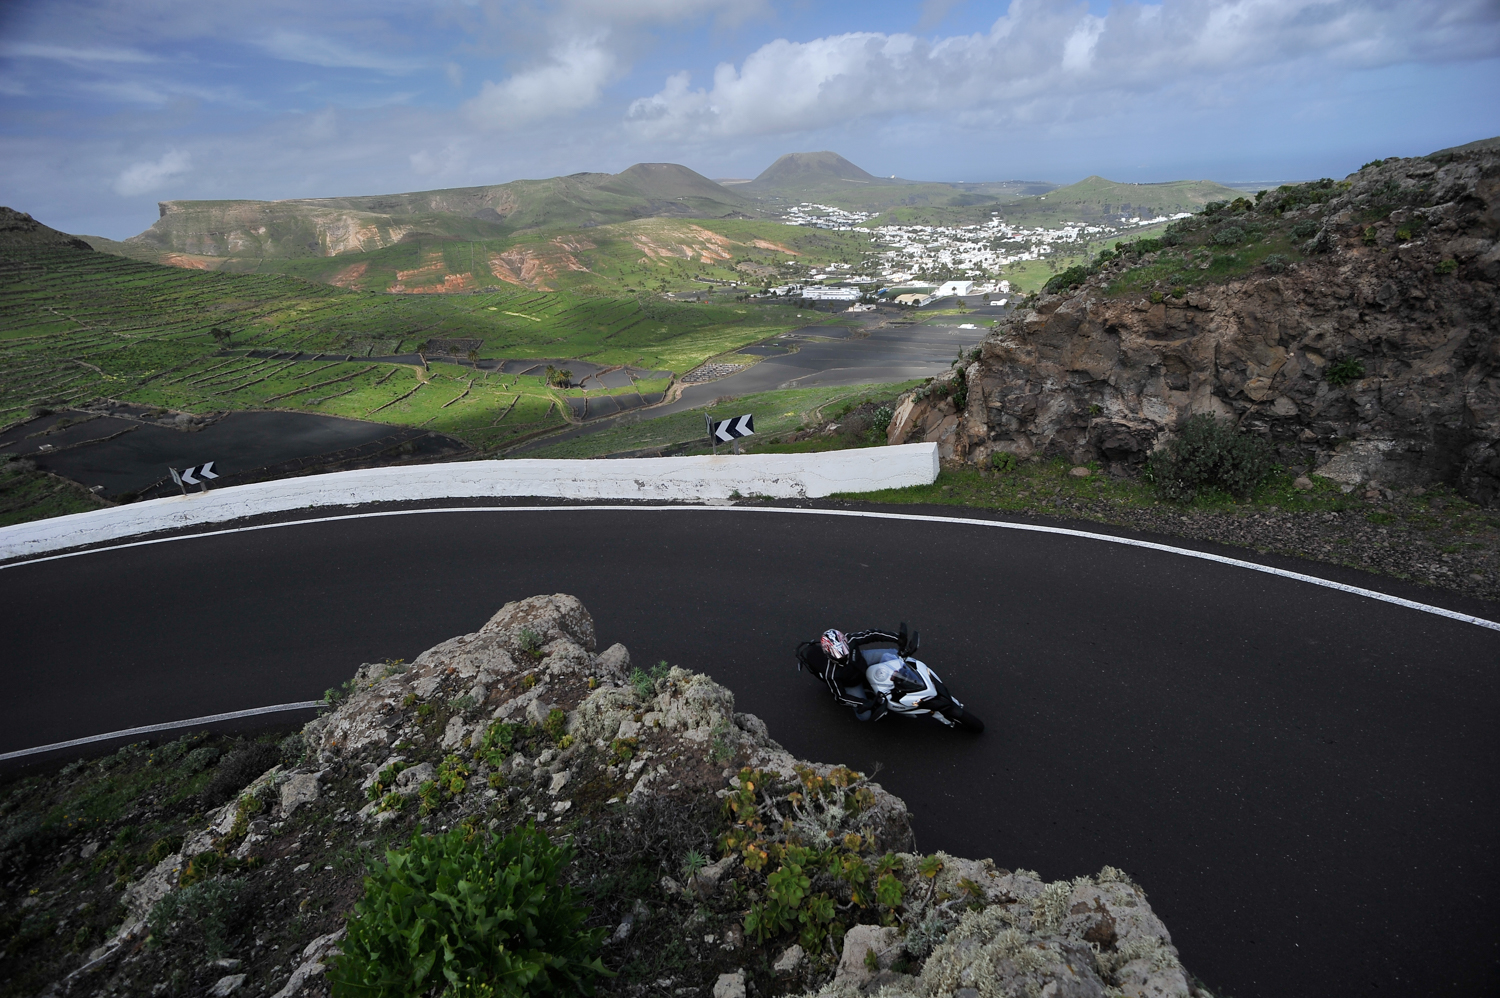 Riding the Ducati Multistrada in Lanzarote, 2010. Photo courtesy of Ducati and SuperbikePlanet.